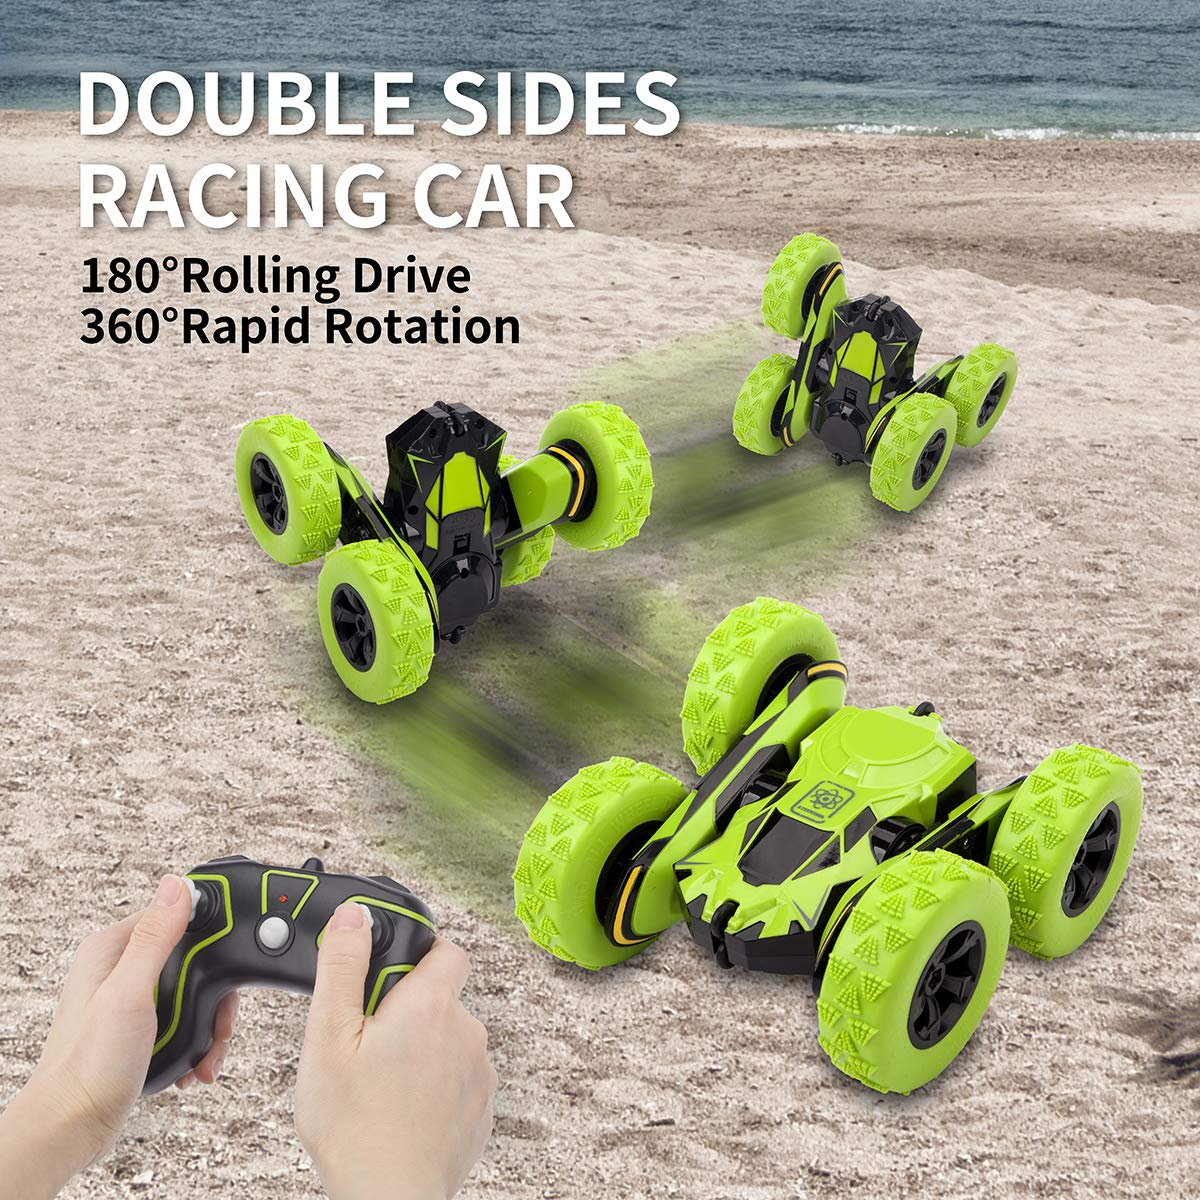 Sugoiti Remote Control Stunt Car Rc 4WD Off Road Rechargeable 2.4Ghz 3D Deformation Racing Car,Double Sided Rotating Tumbling 360° Flips Off Road High Speed 7.5Mph Truck, Including Battery by Sugoiti (Image #2)